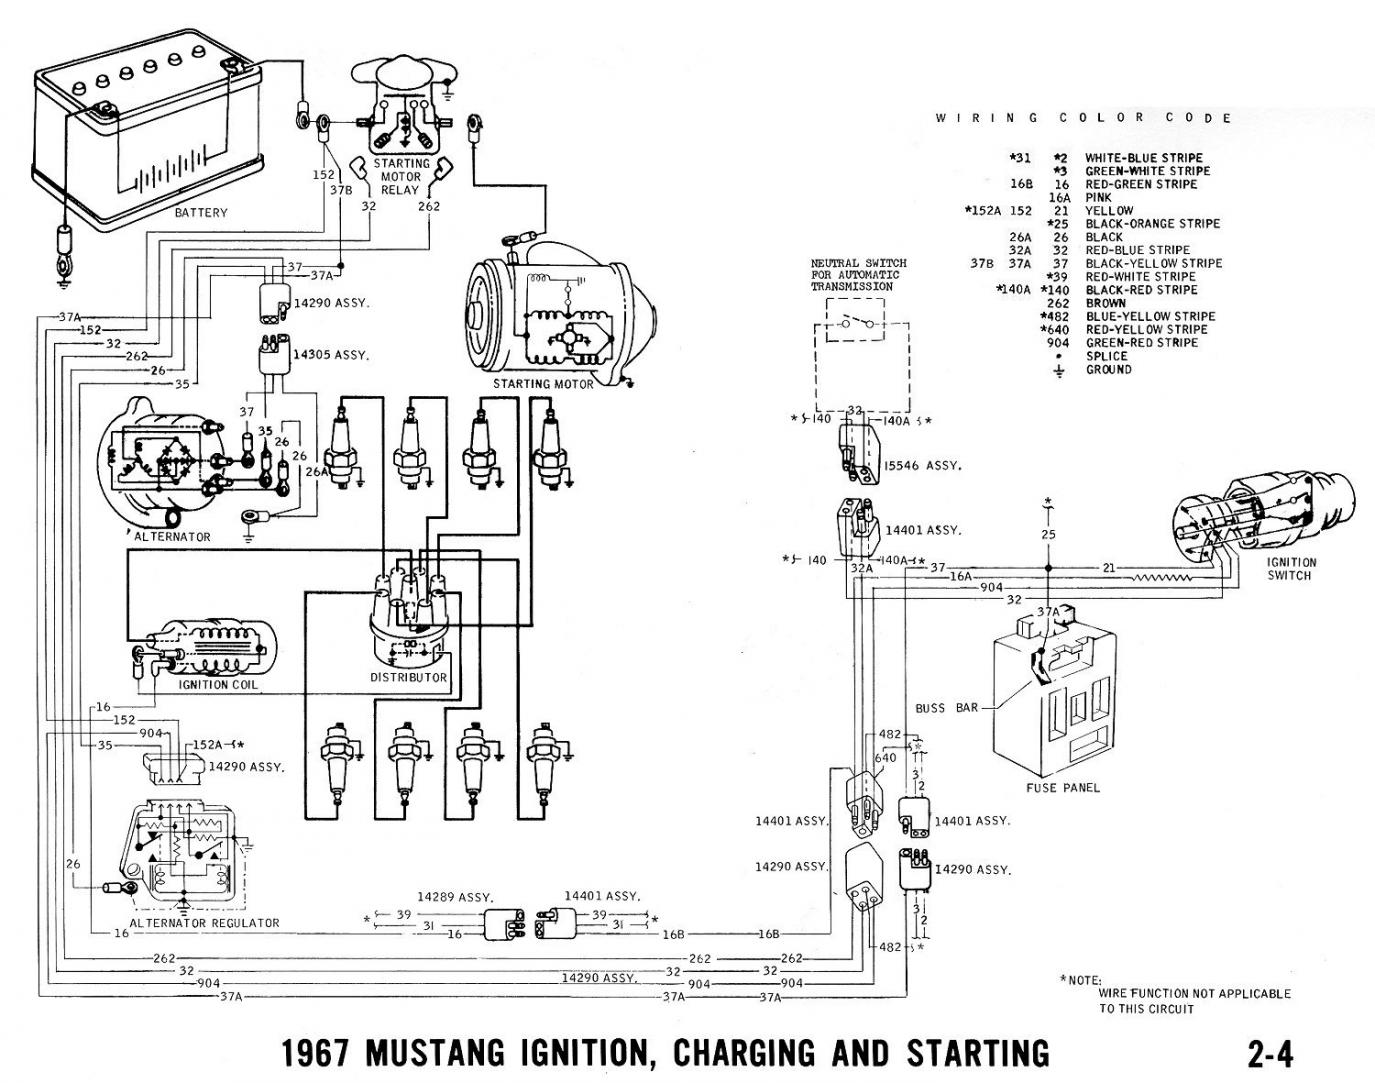 1966 ford mustang ignition wiring diagram wiring diagram and hernes 1966 ford mustang wiring harness colors base